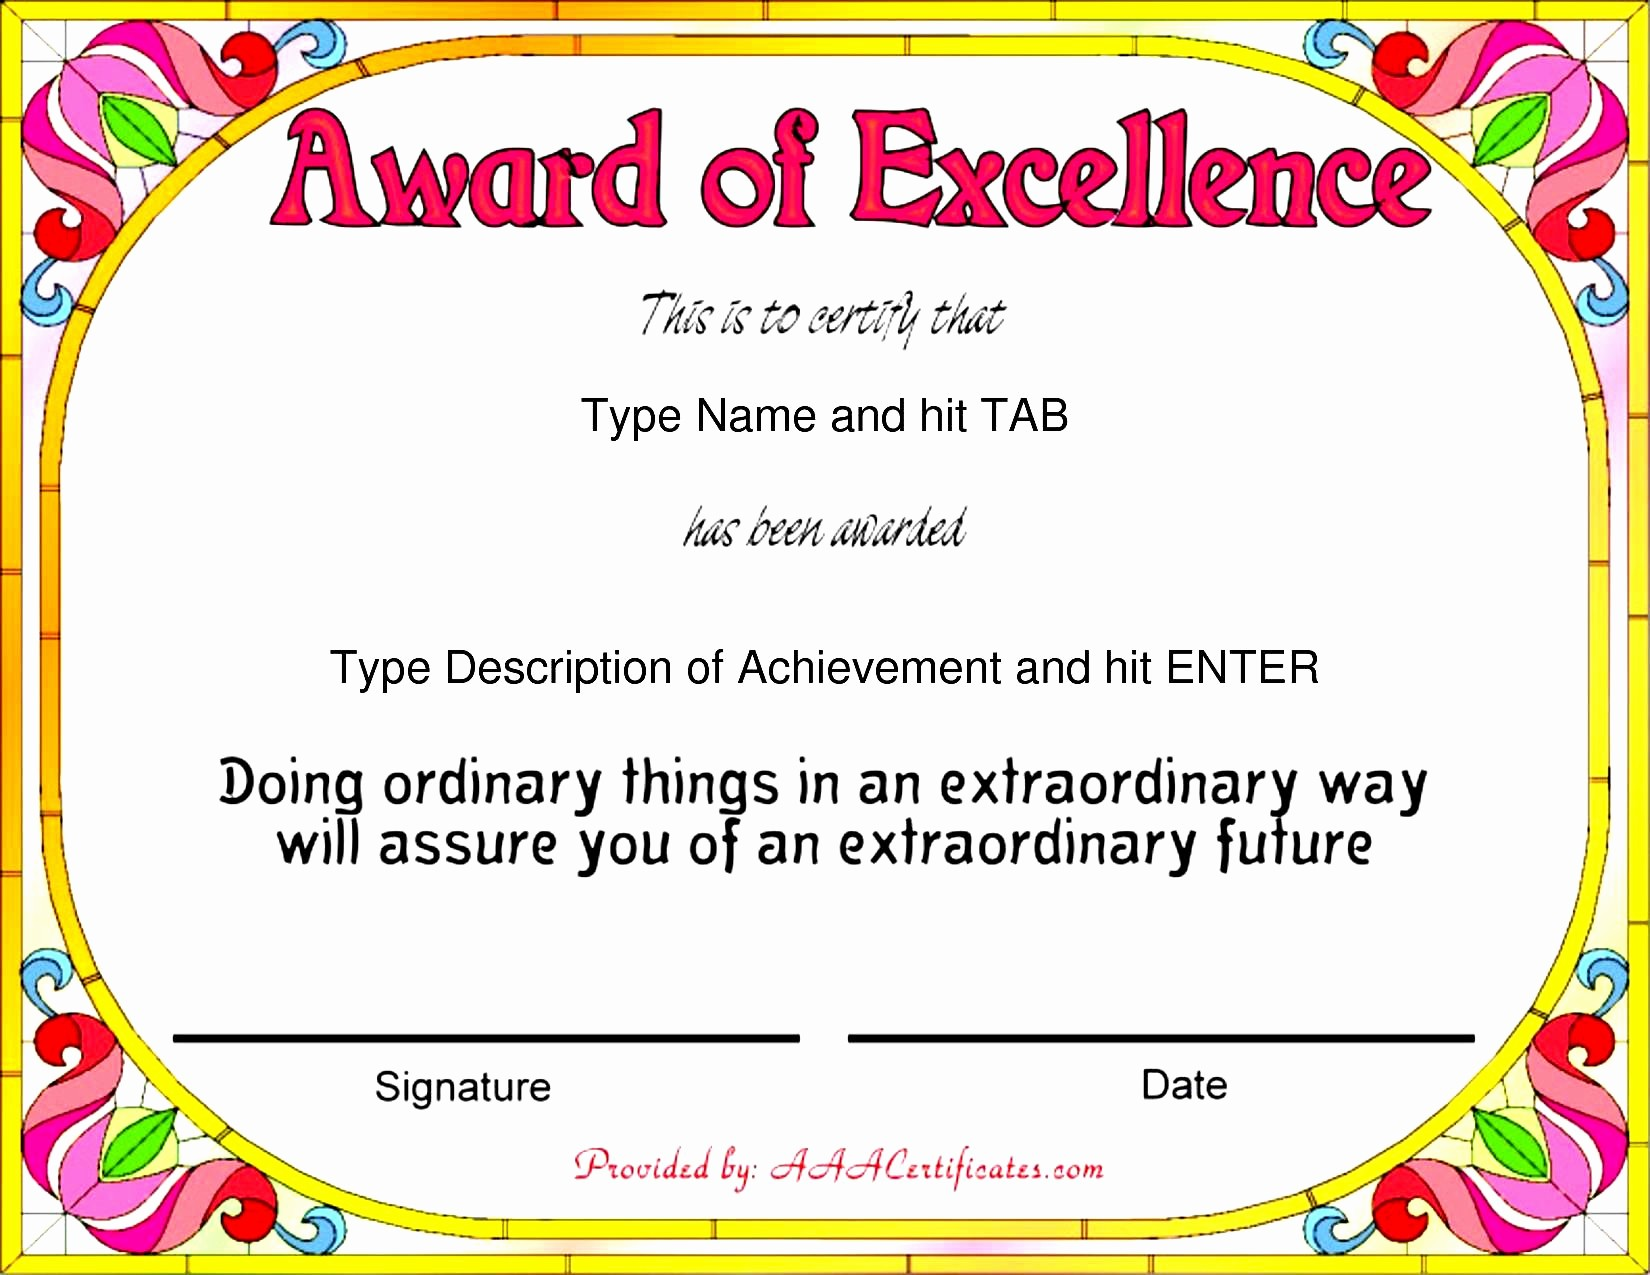 Certificate Of Excellence Template Word New 43 Stunning Certificate and Award Template Word Examples